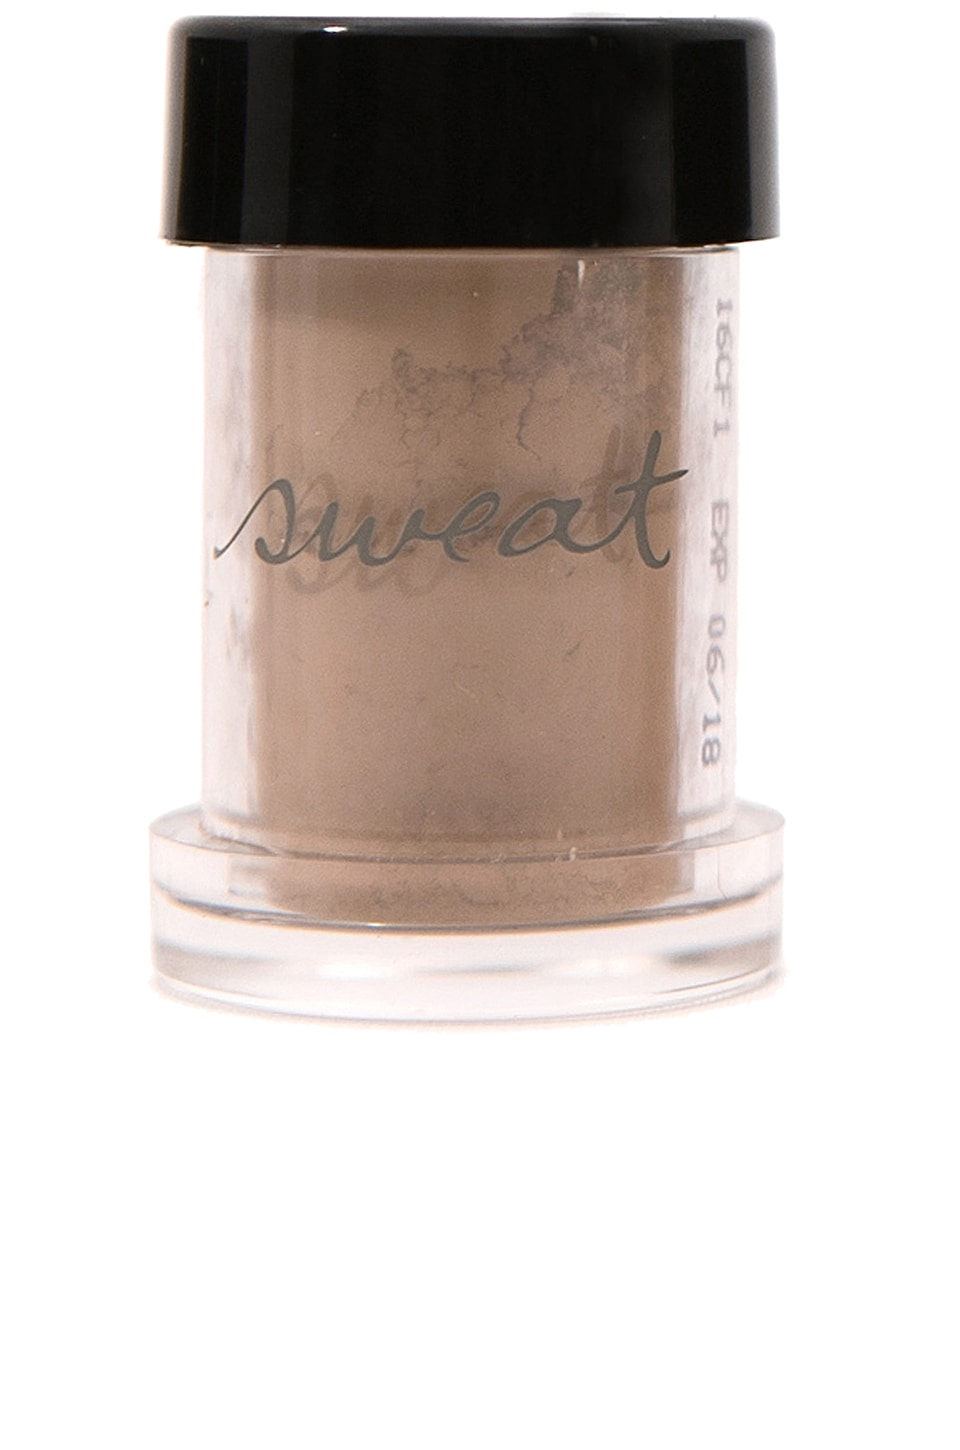 SWEAT COSMETICS Mineral Foundation Spf 30 Refill in Shade 200